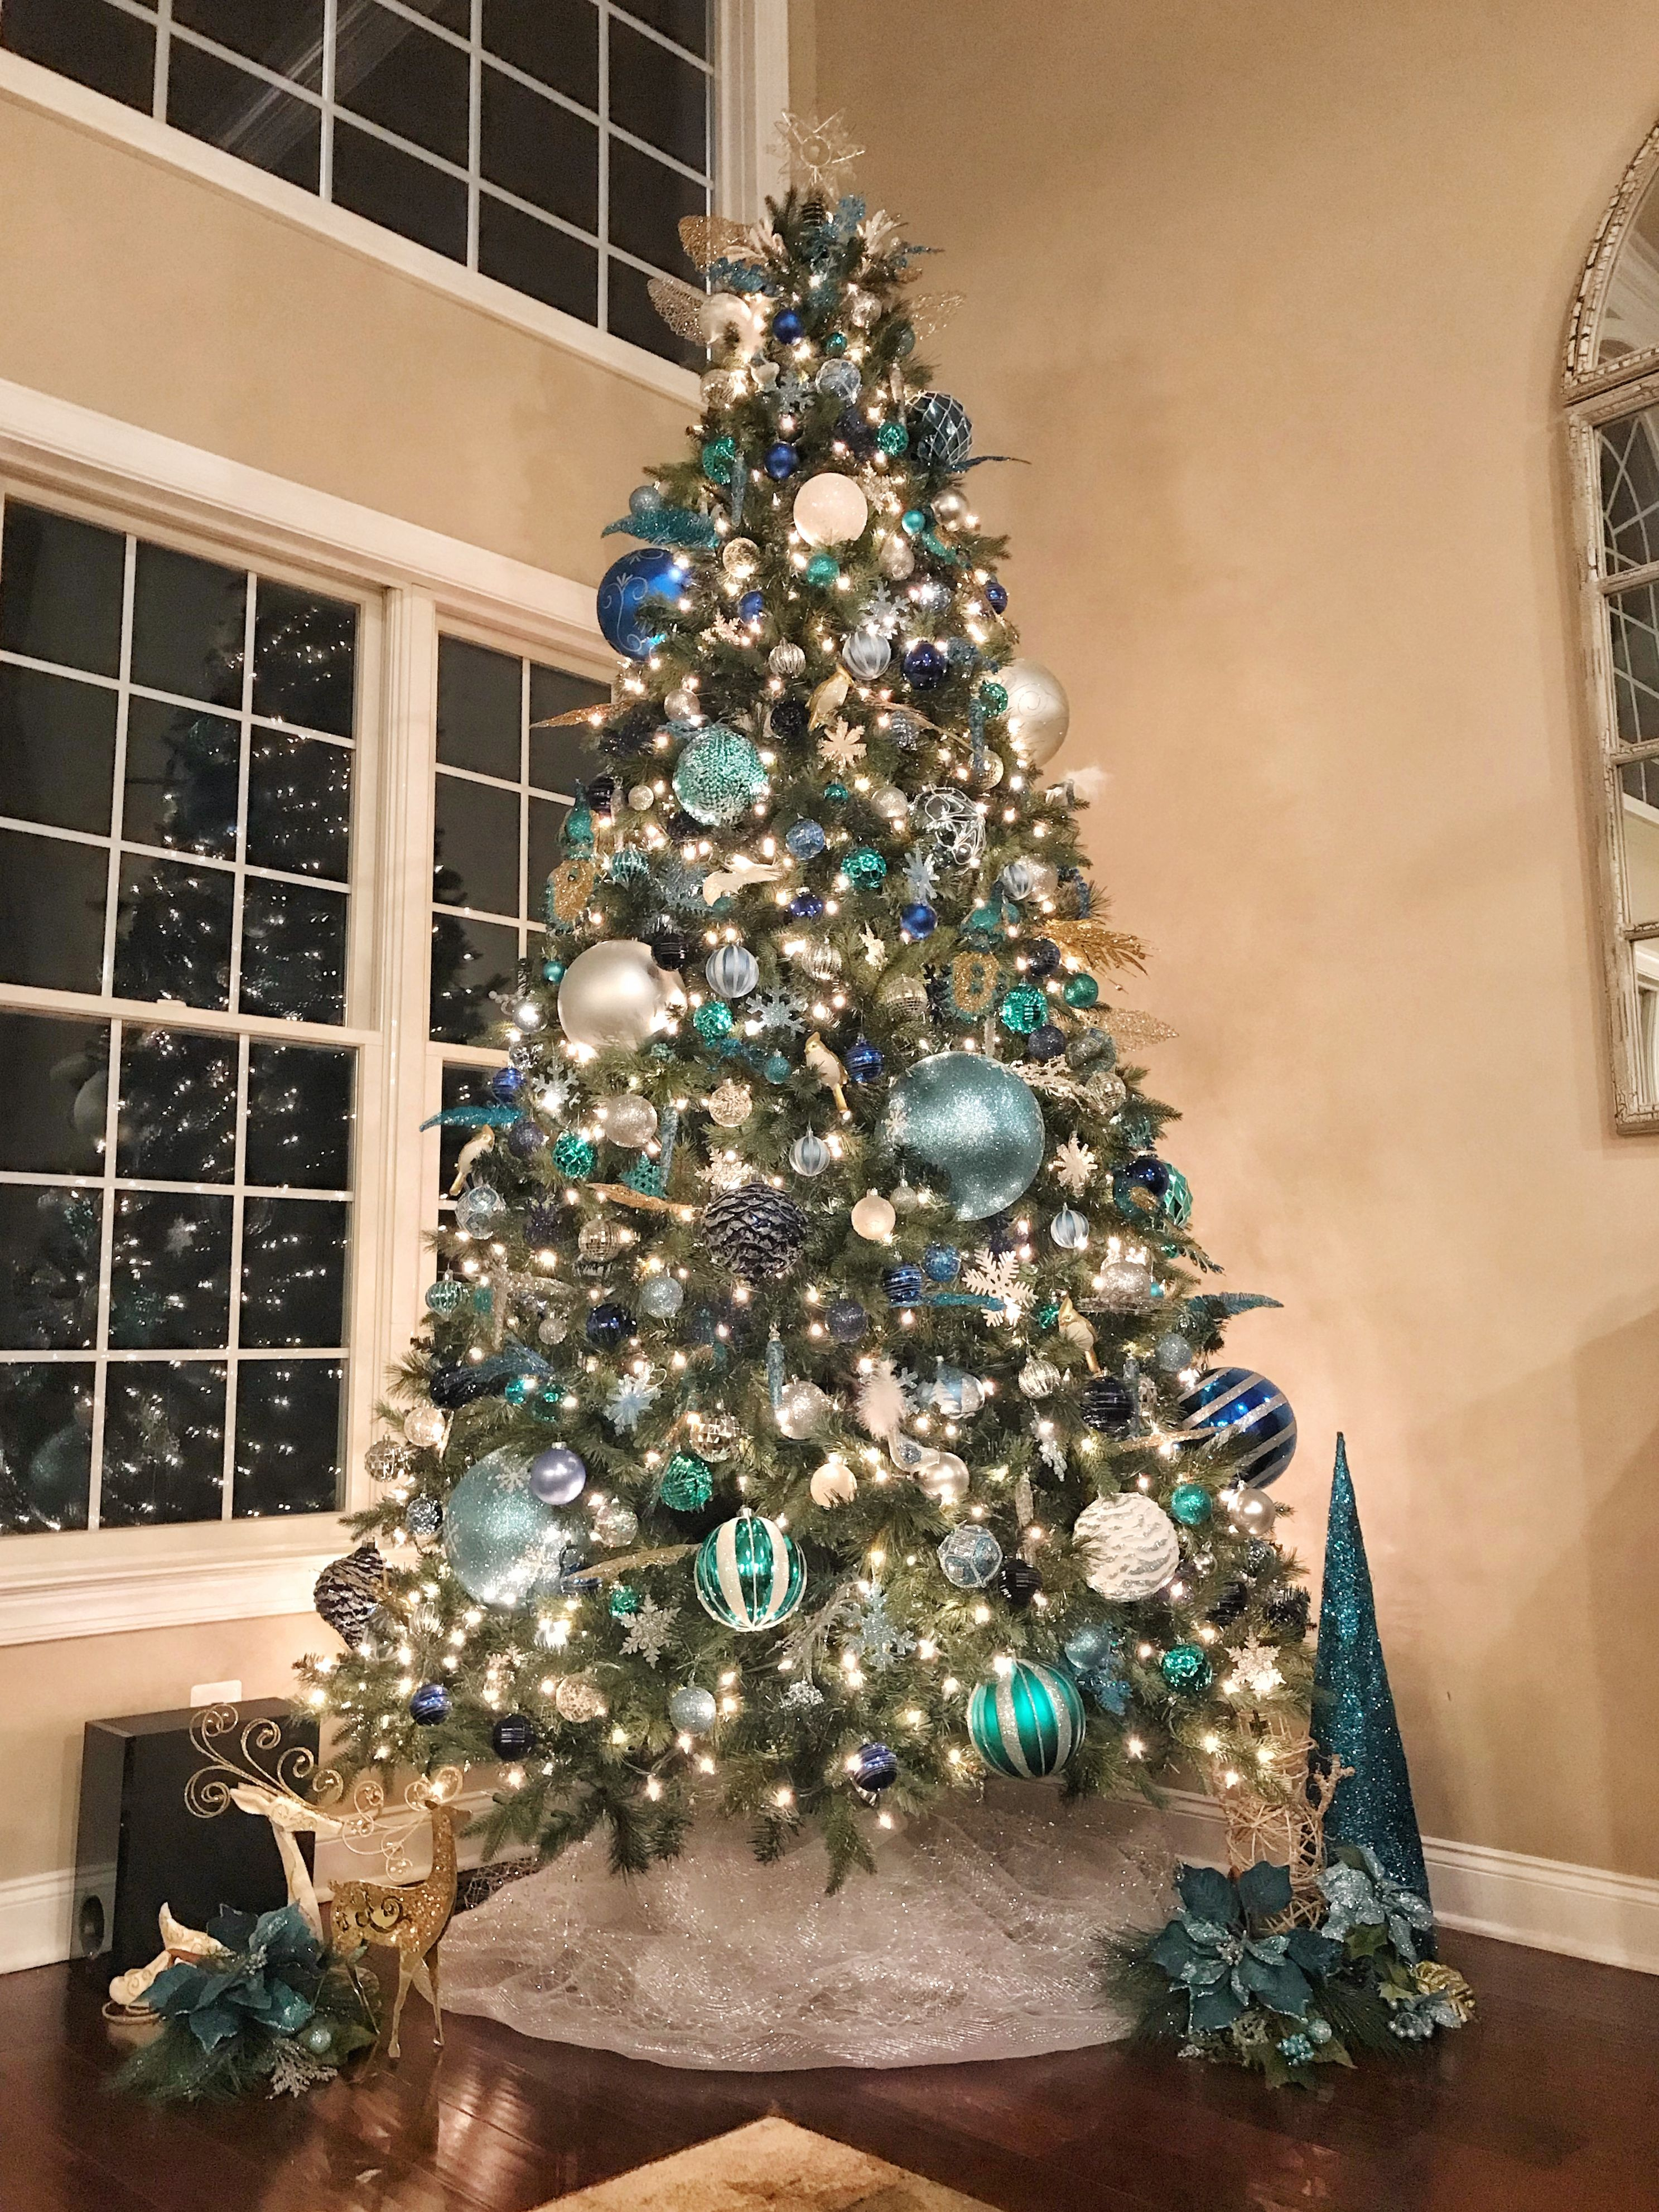 Tall Christmas Tree For Two Story Room Decorated In Blue Silver And Gold Blue Christmas Tree Decorations Glamorous Christmas Tree Elegant Christmas Trees